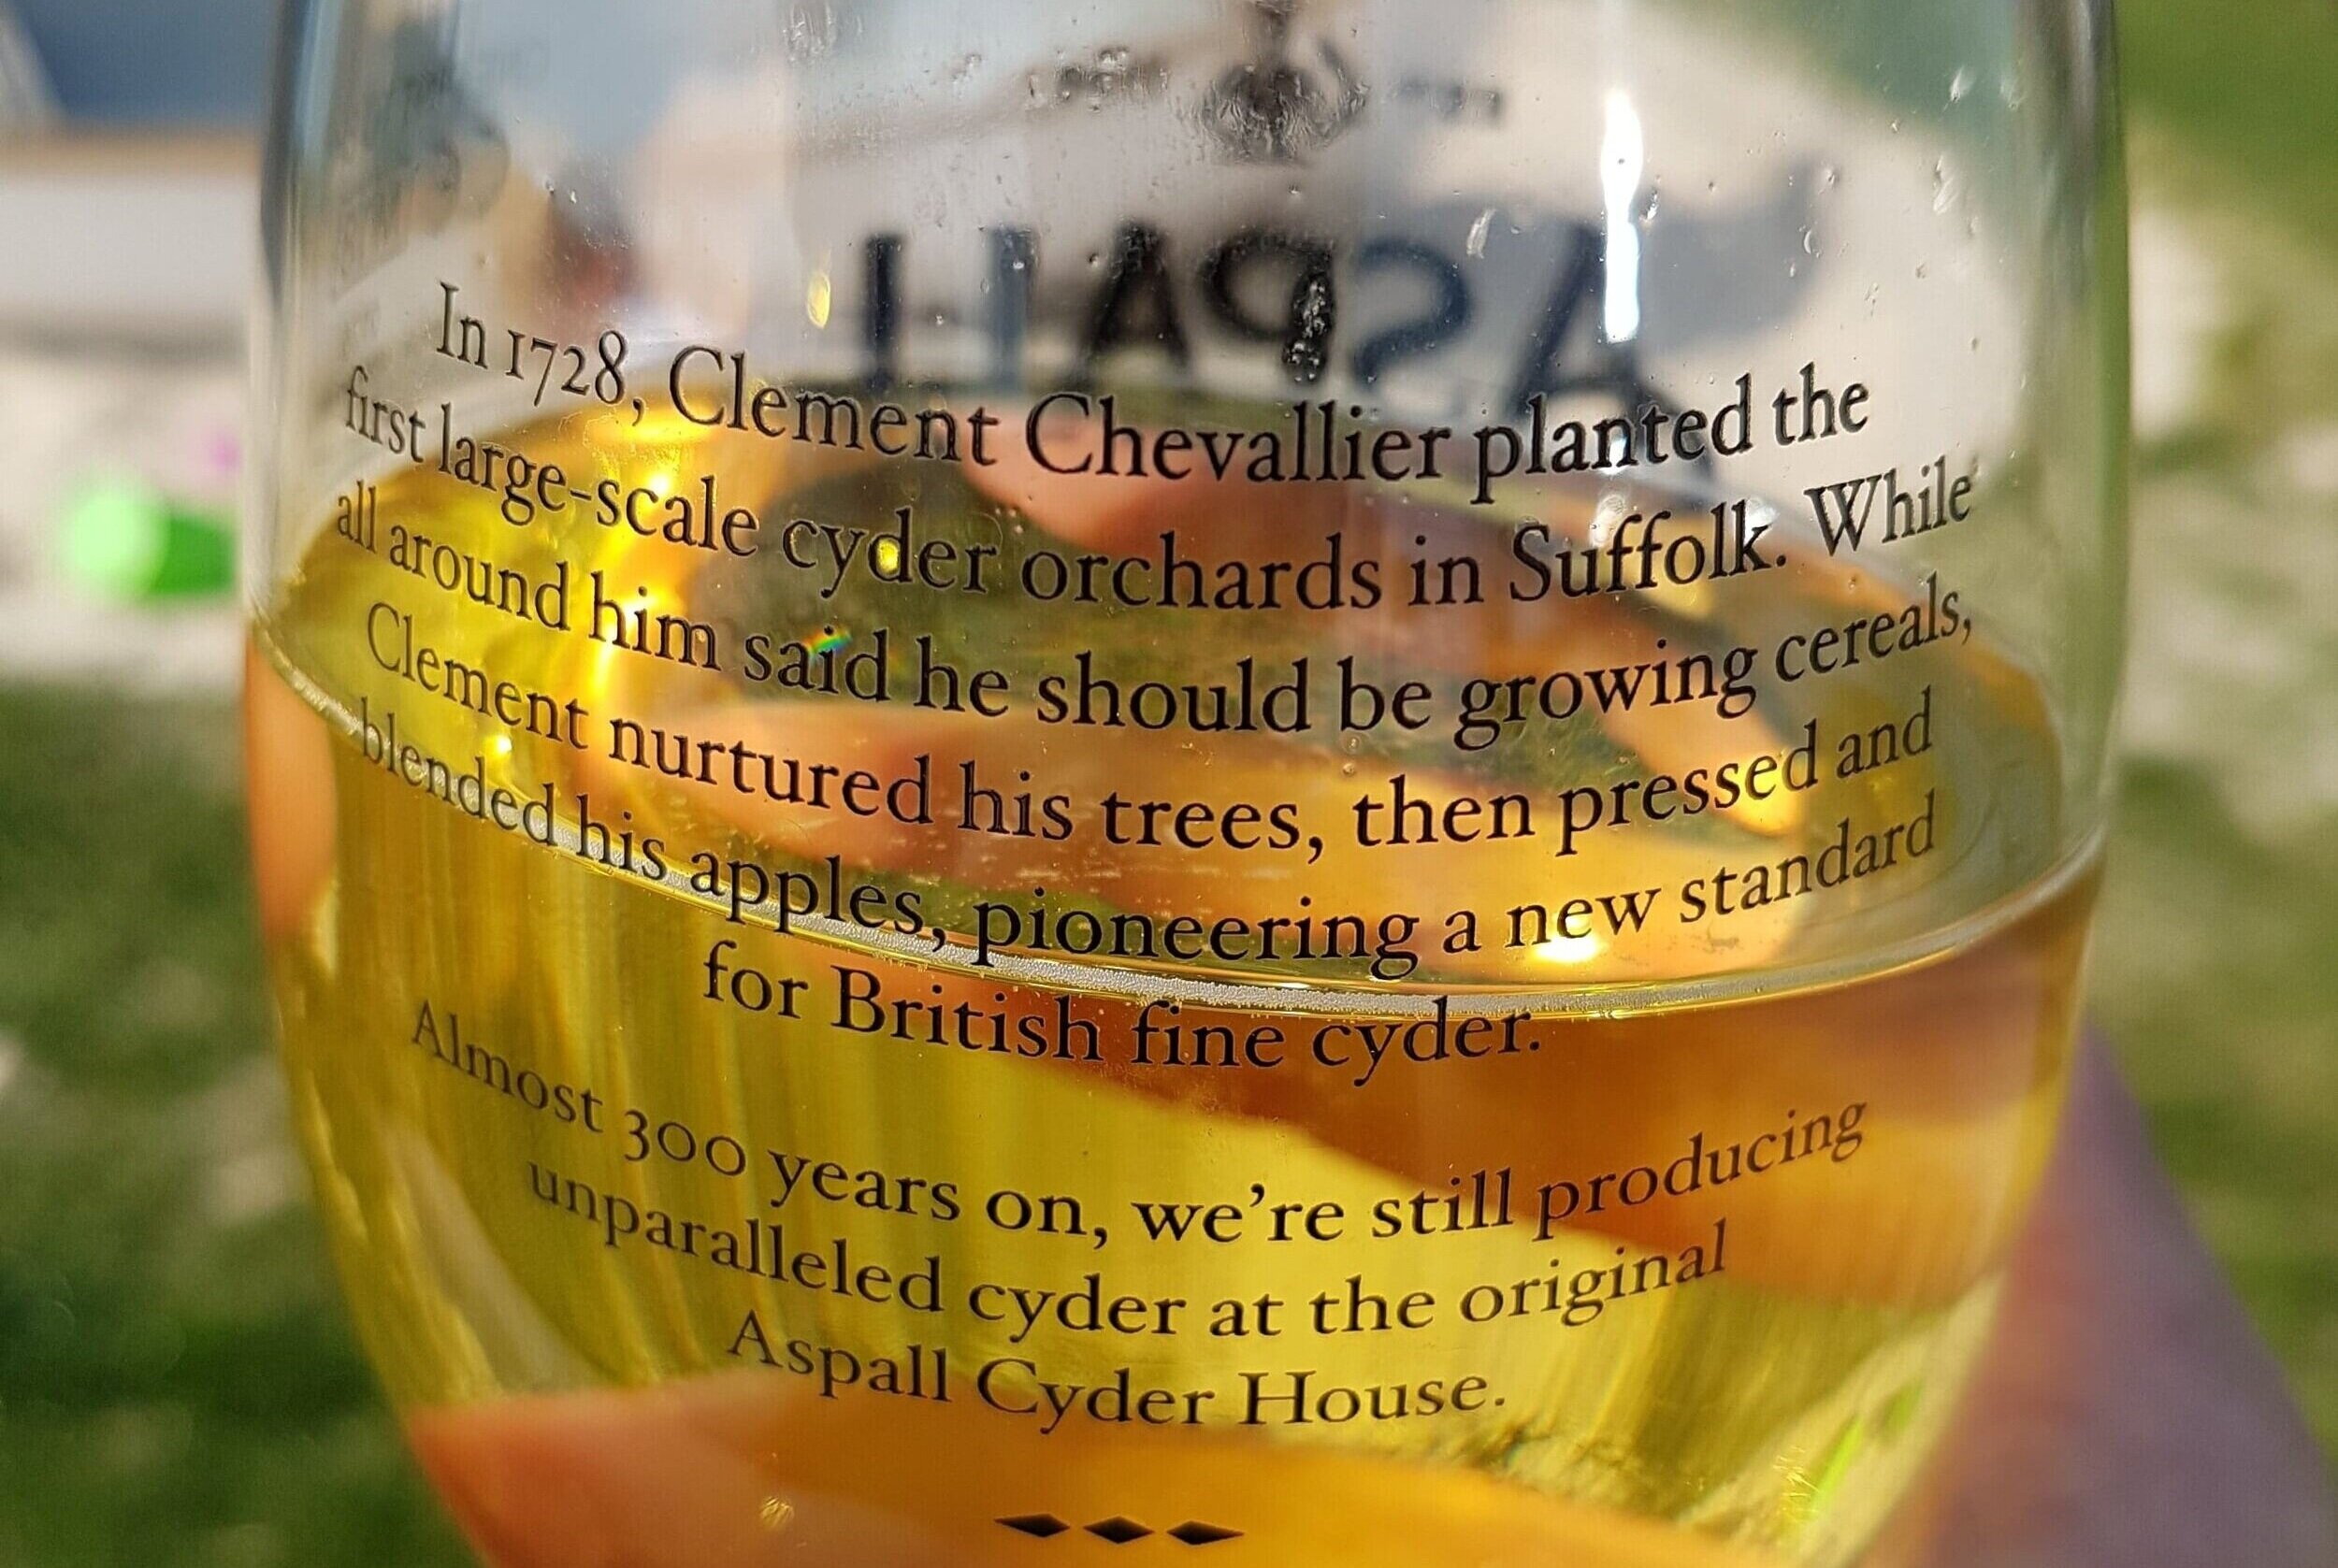 CLIENTS - Current and recent clients include Aspall Cyder and Aspall Vinegar, Hillfarm Oils, The Wild Meat Company, Slate Cheese & Provisions, the Aldeburgh Food & Drink Festival Conference, Bury St Edmunds and Beyond, Yarn Hill Lincoln Reds and Honey + Harvey.